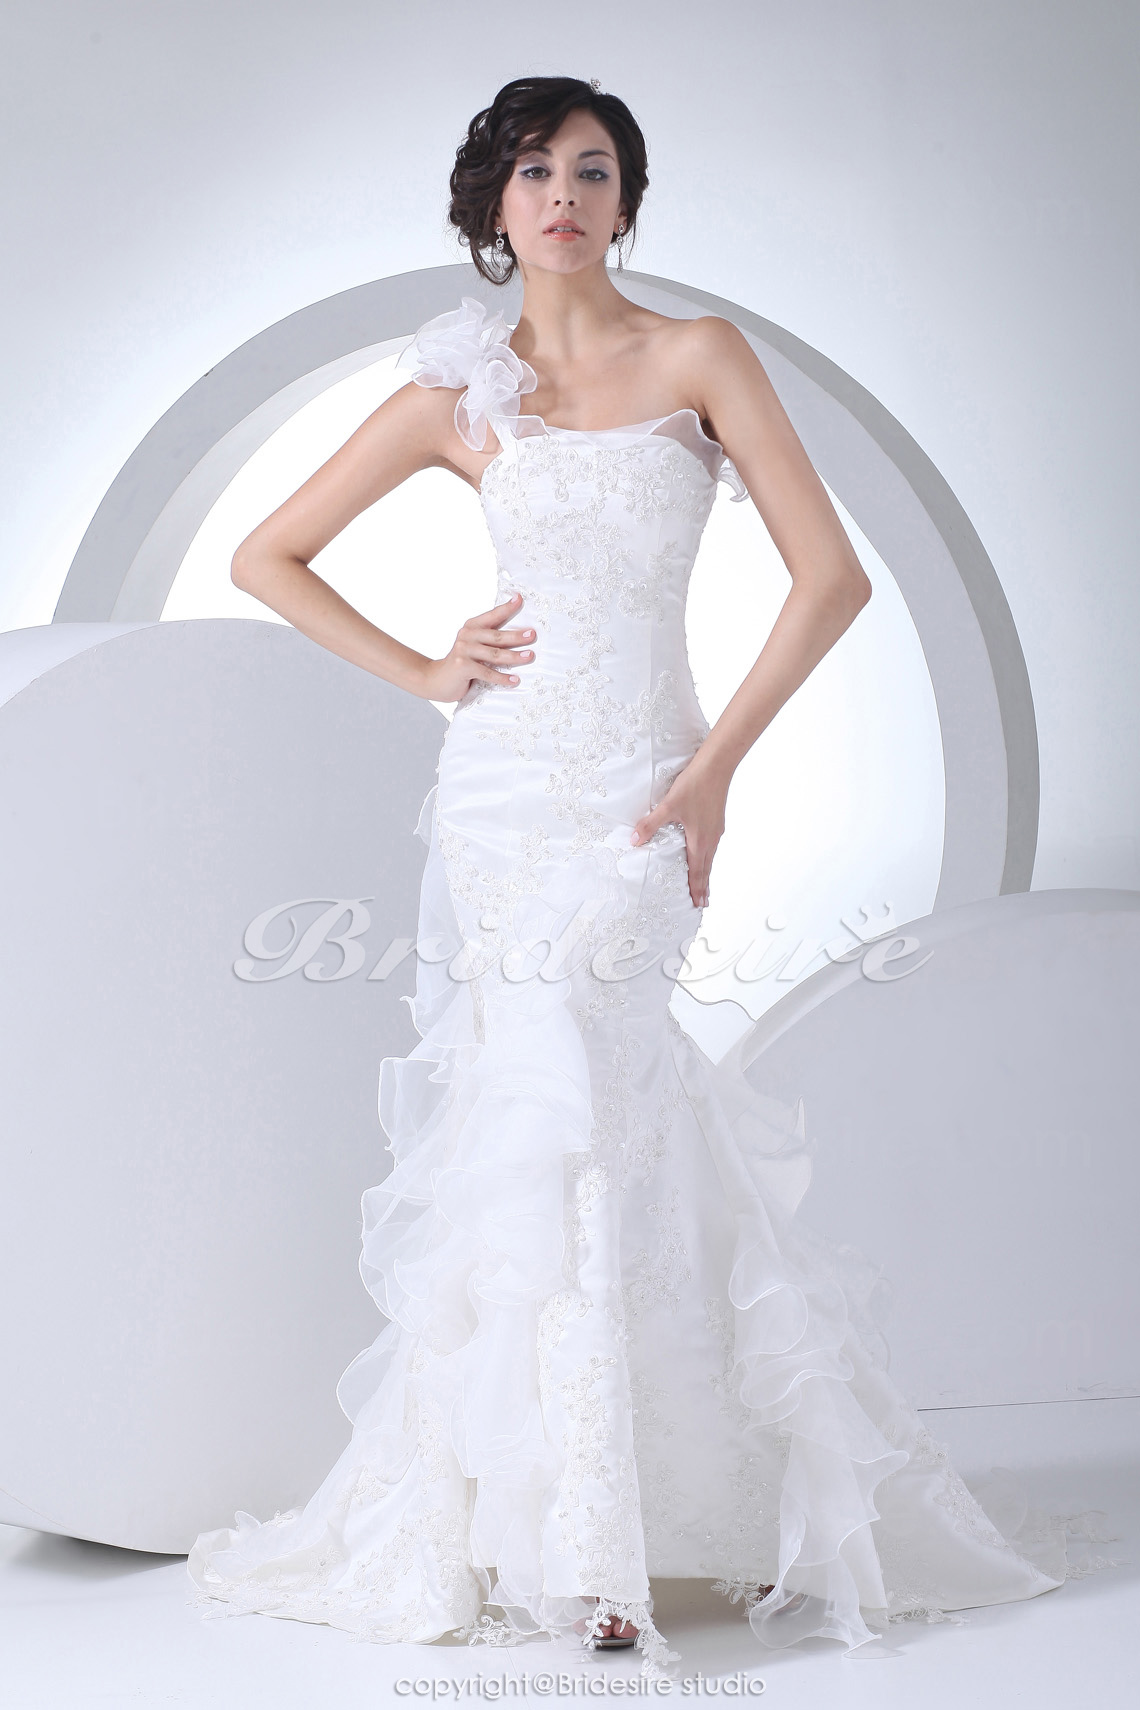 Trumpet/Mermaid One Shoulder Sweep Train Sleeveless Satin Organza Wedding Dress